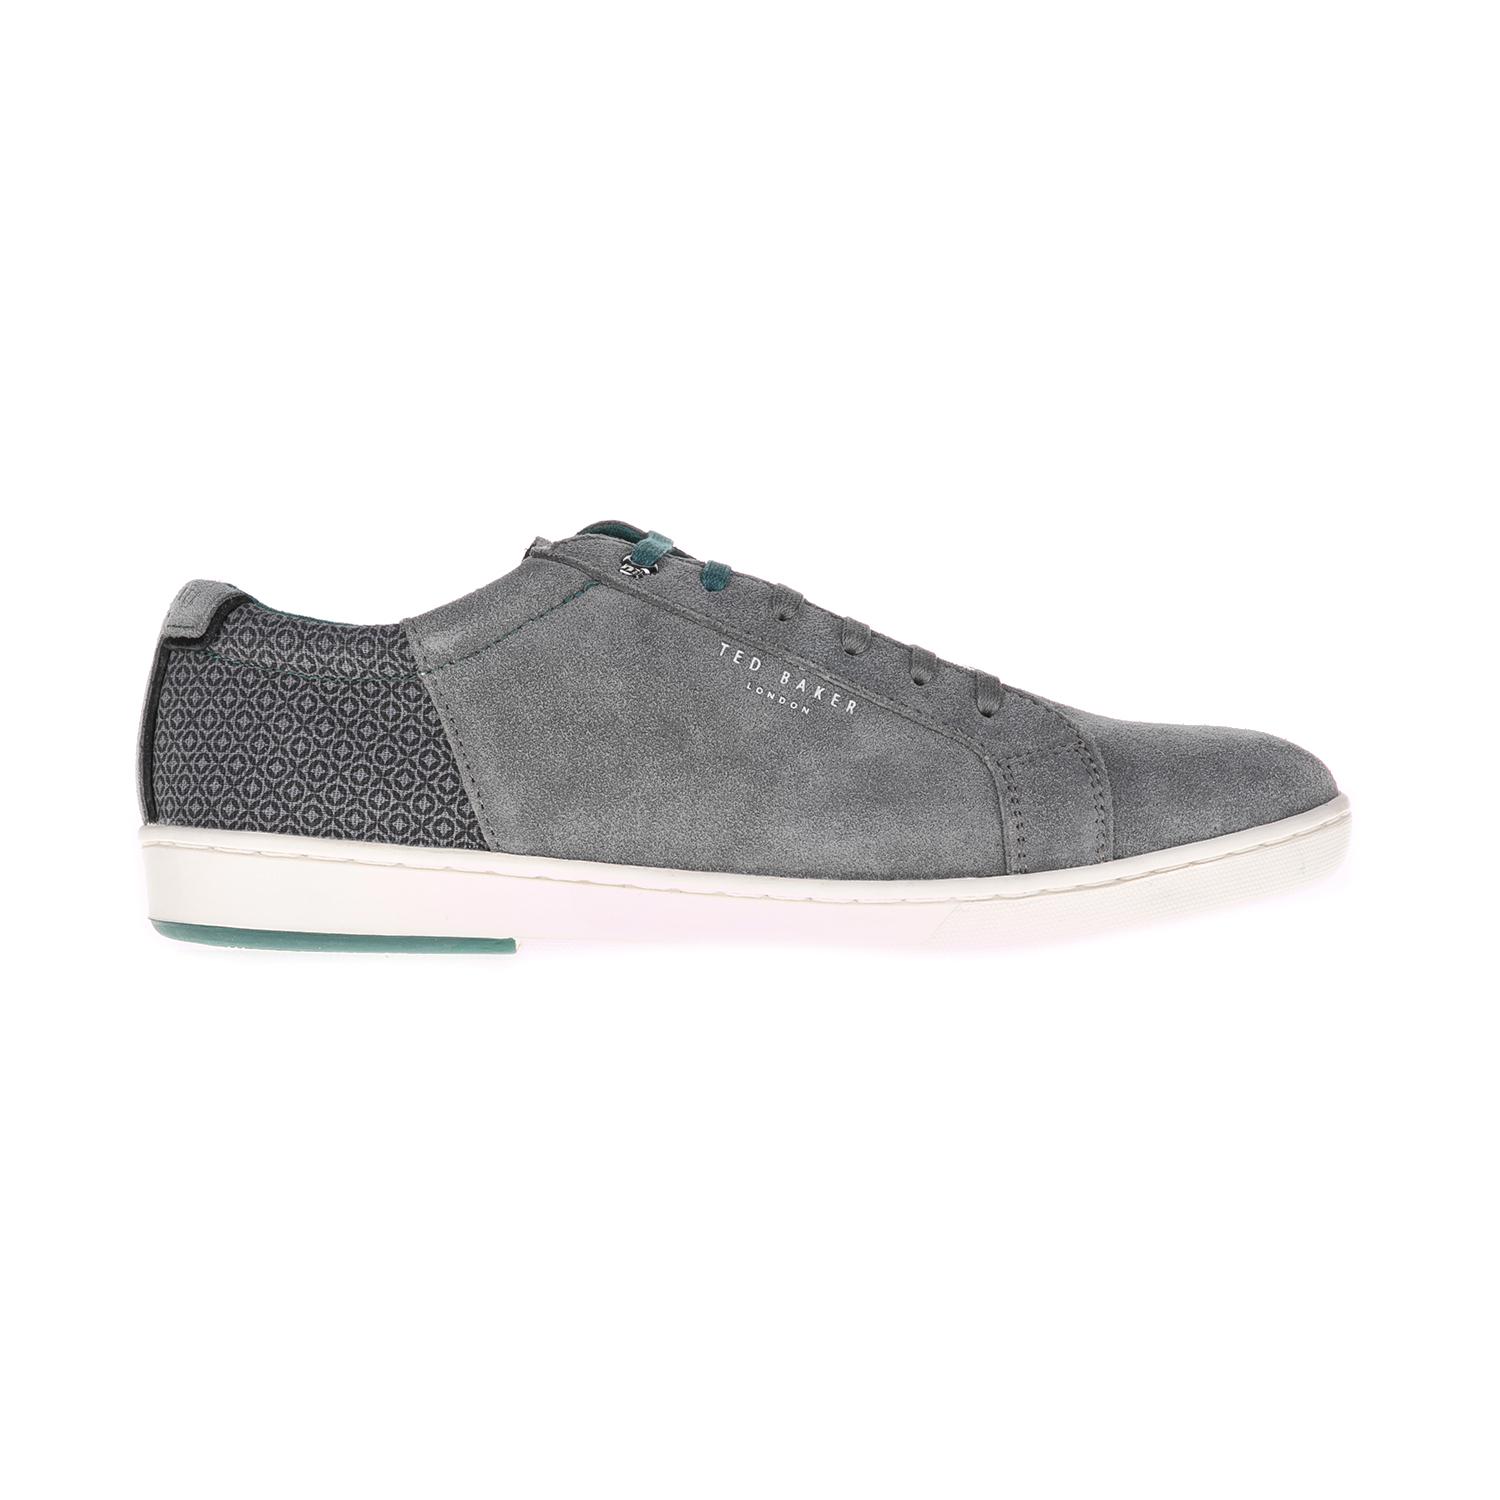 TED BAKER – Ανδρικά sneakers XILOTO TED BAKER γκρι